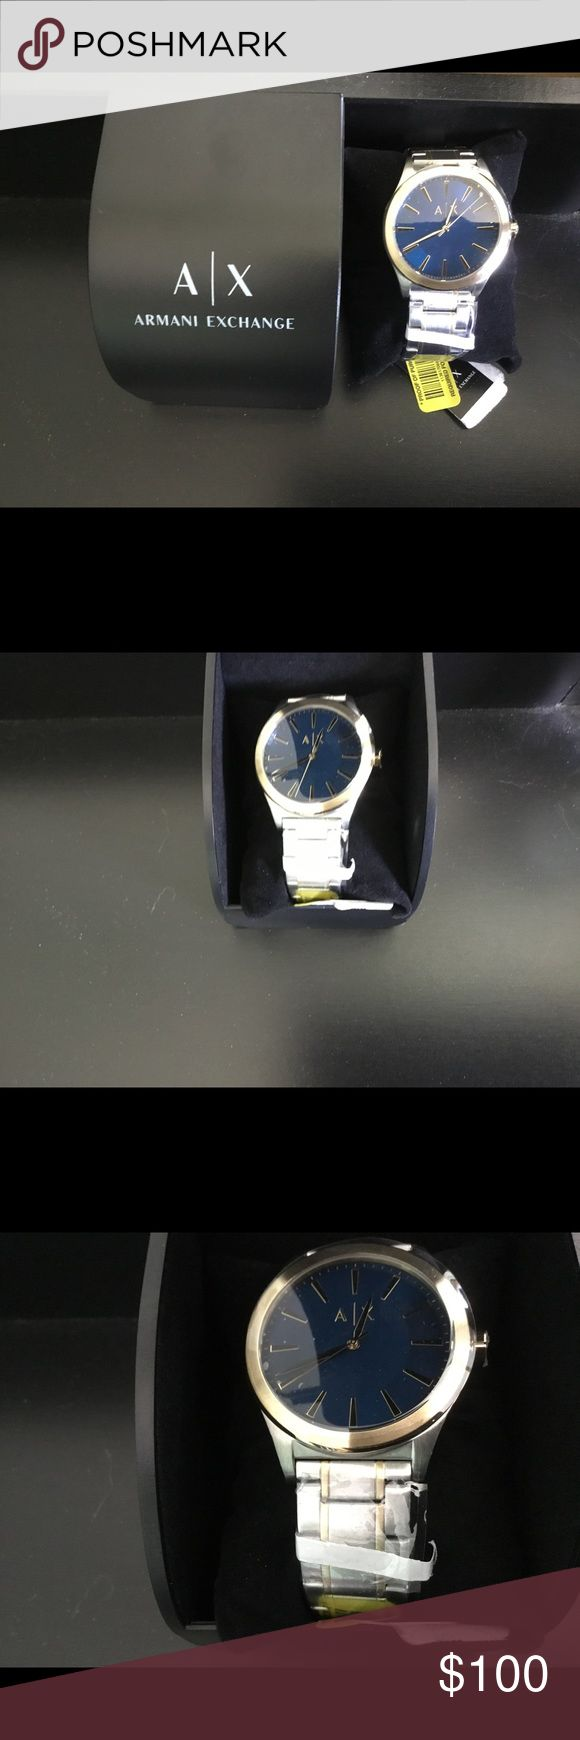 Brand New With Tag A/X Watch New with Tag A/X watch A/X Armani Exchange Accessories Watches